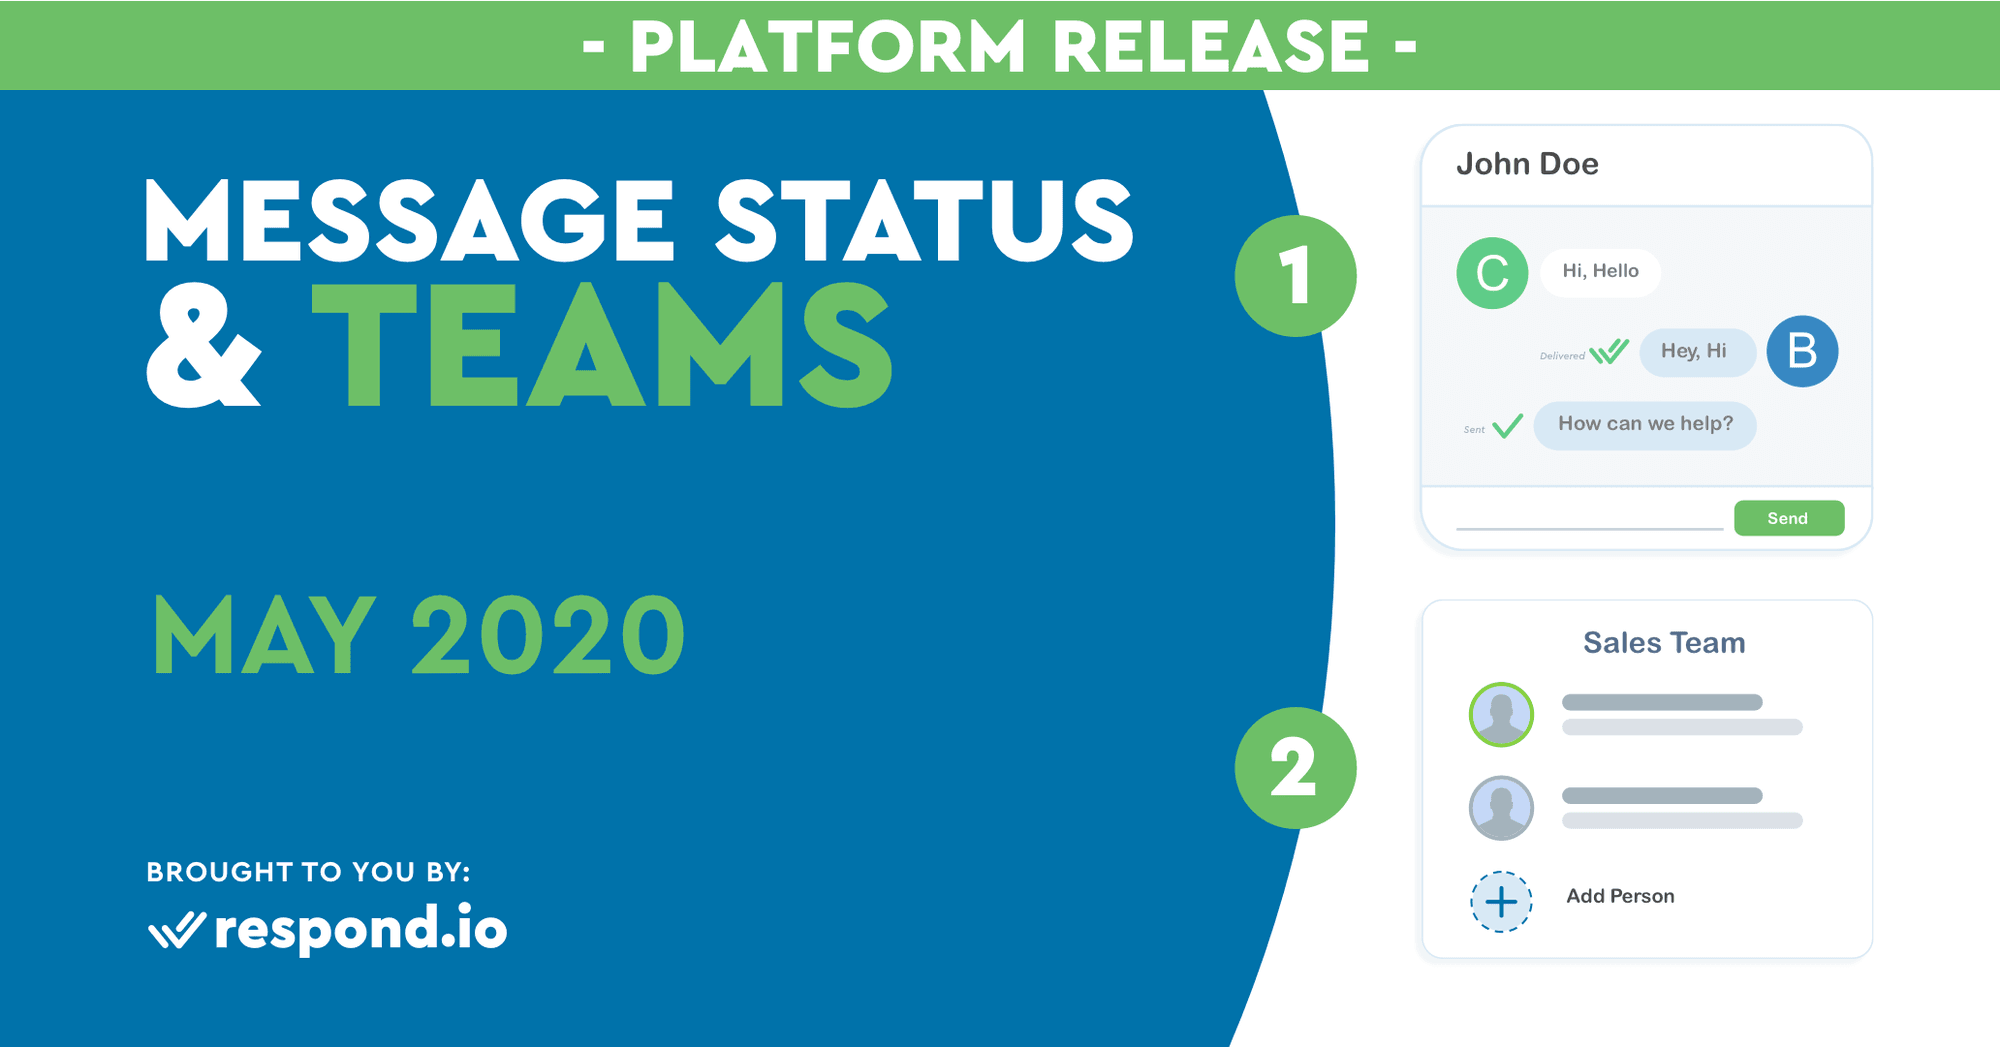 The May 2020 Release - Message Status & Teams